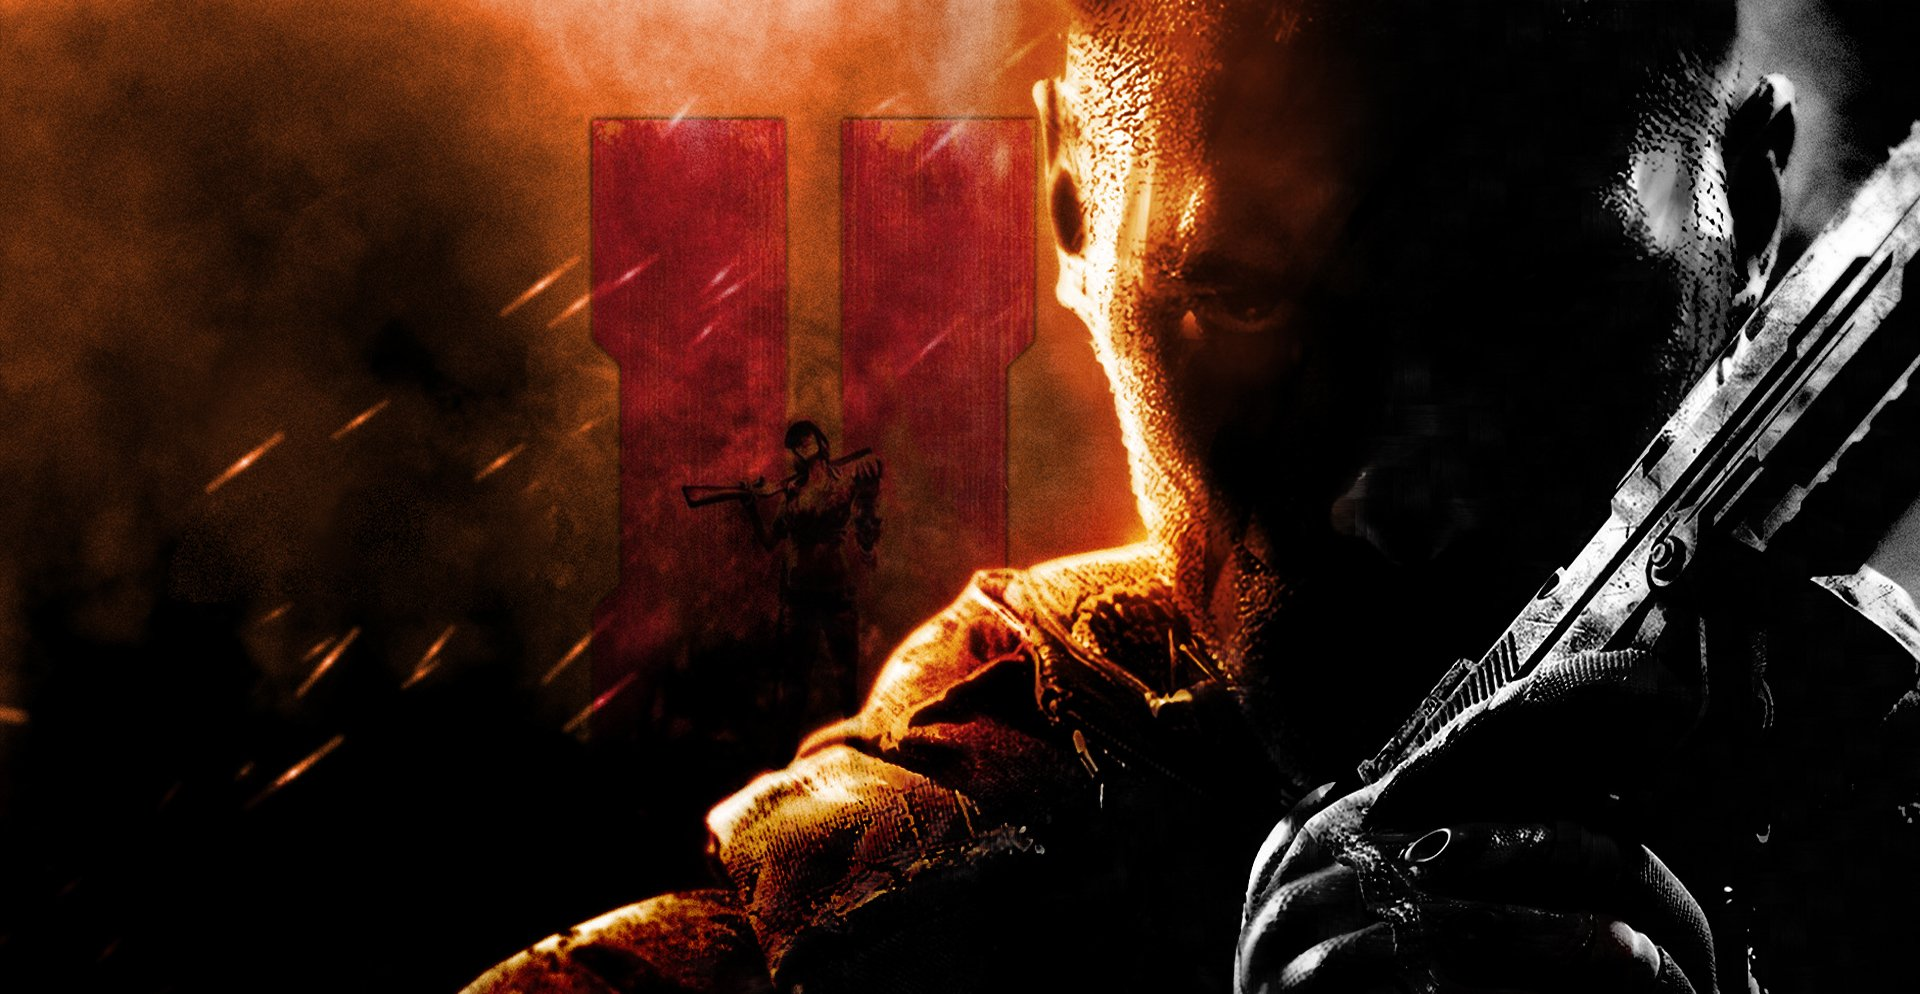 Call Of Duty Black Ops Ii Wallpaper And Background Image